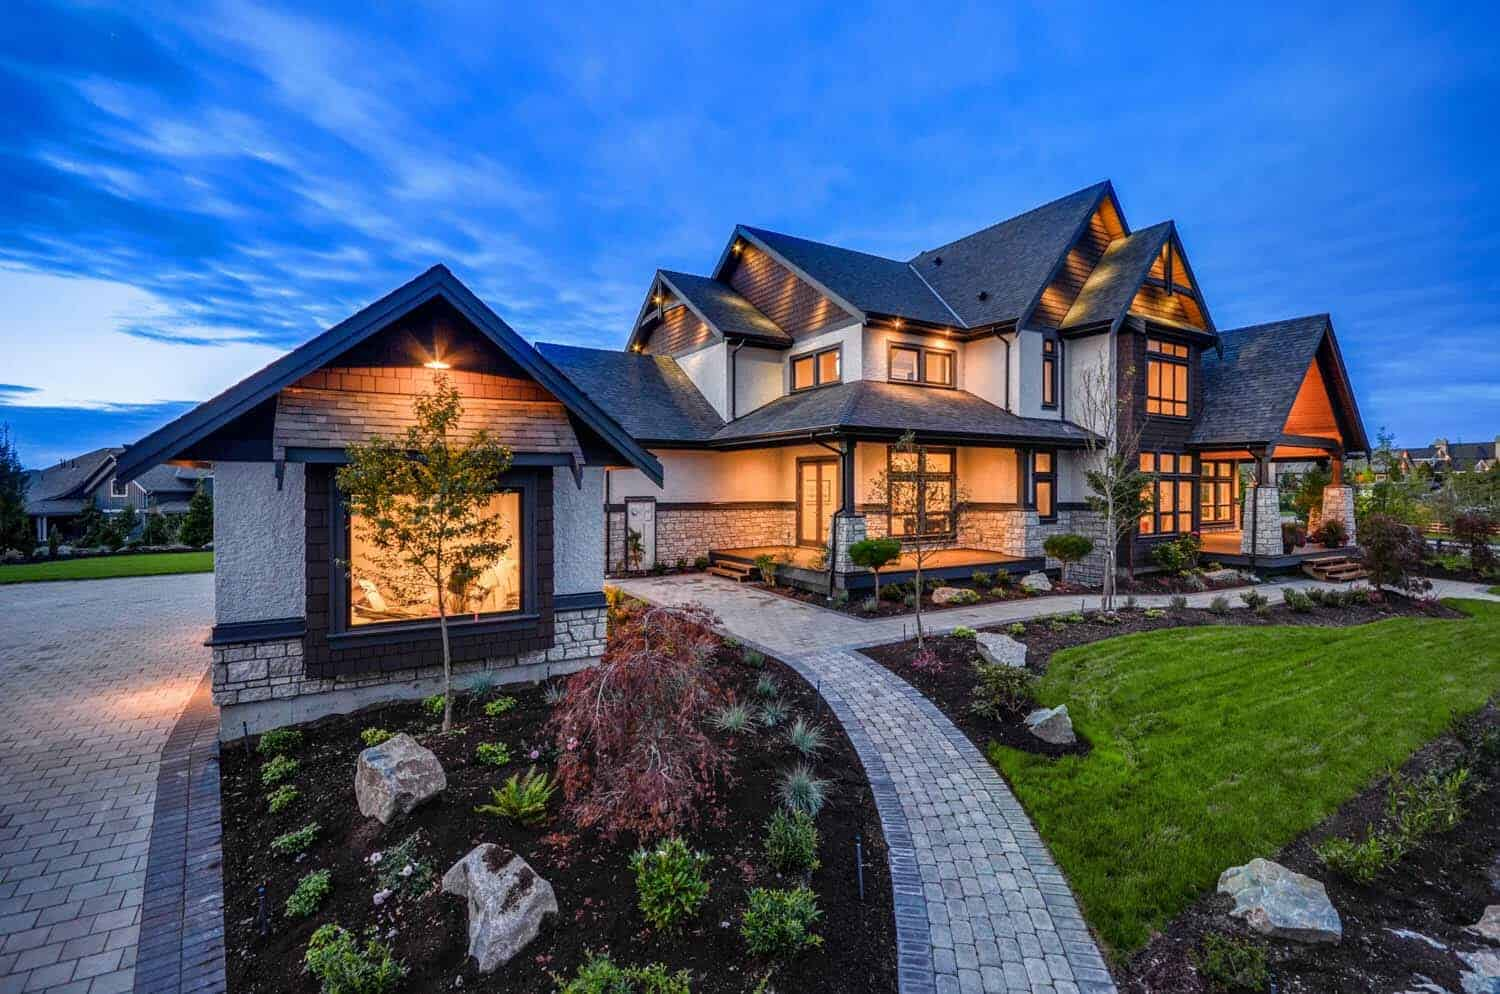 Transitional style home in British Columbia showcases gorgeous details